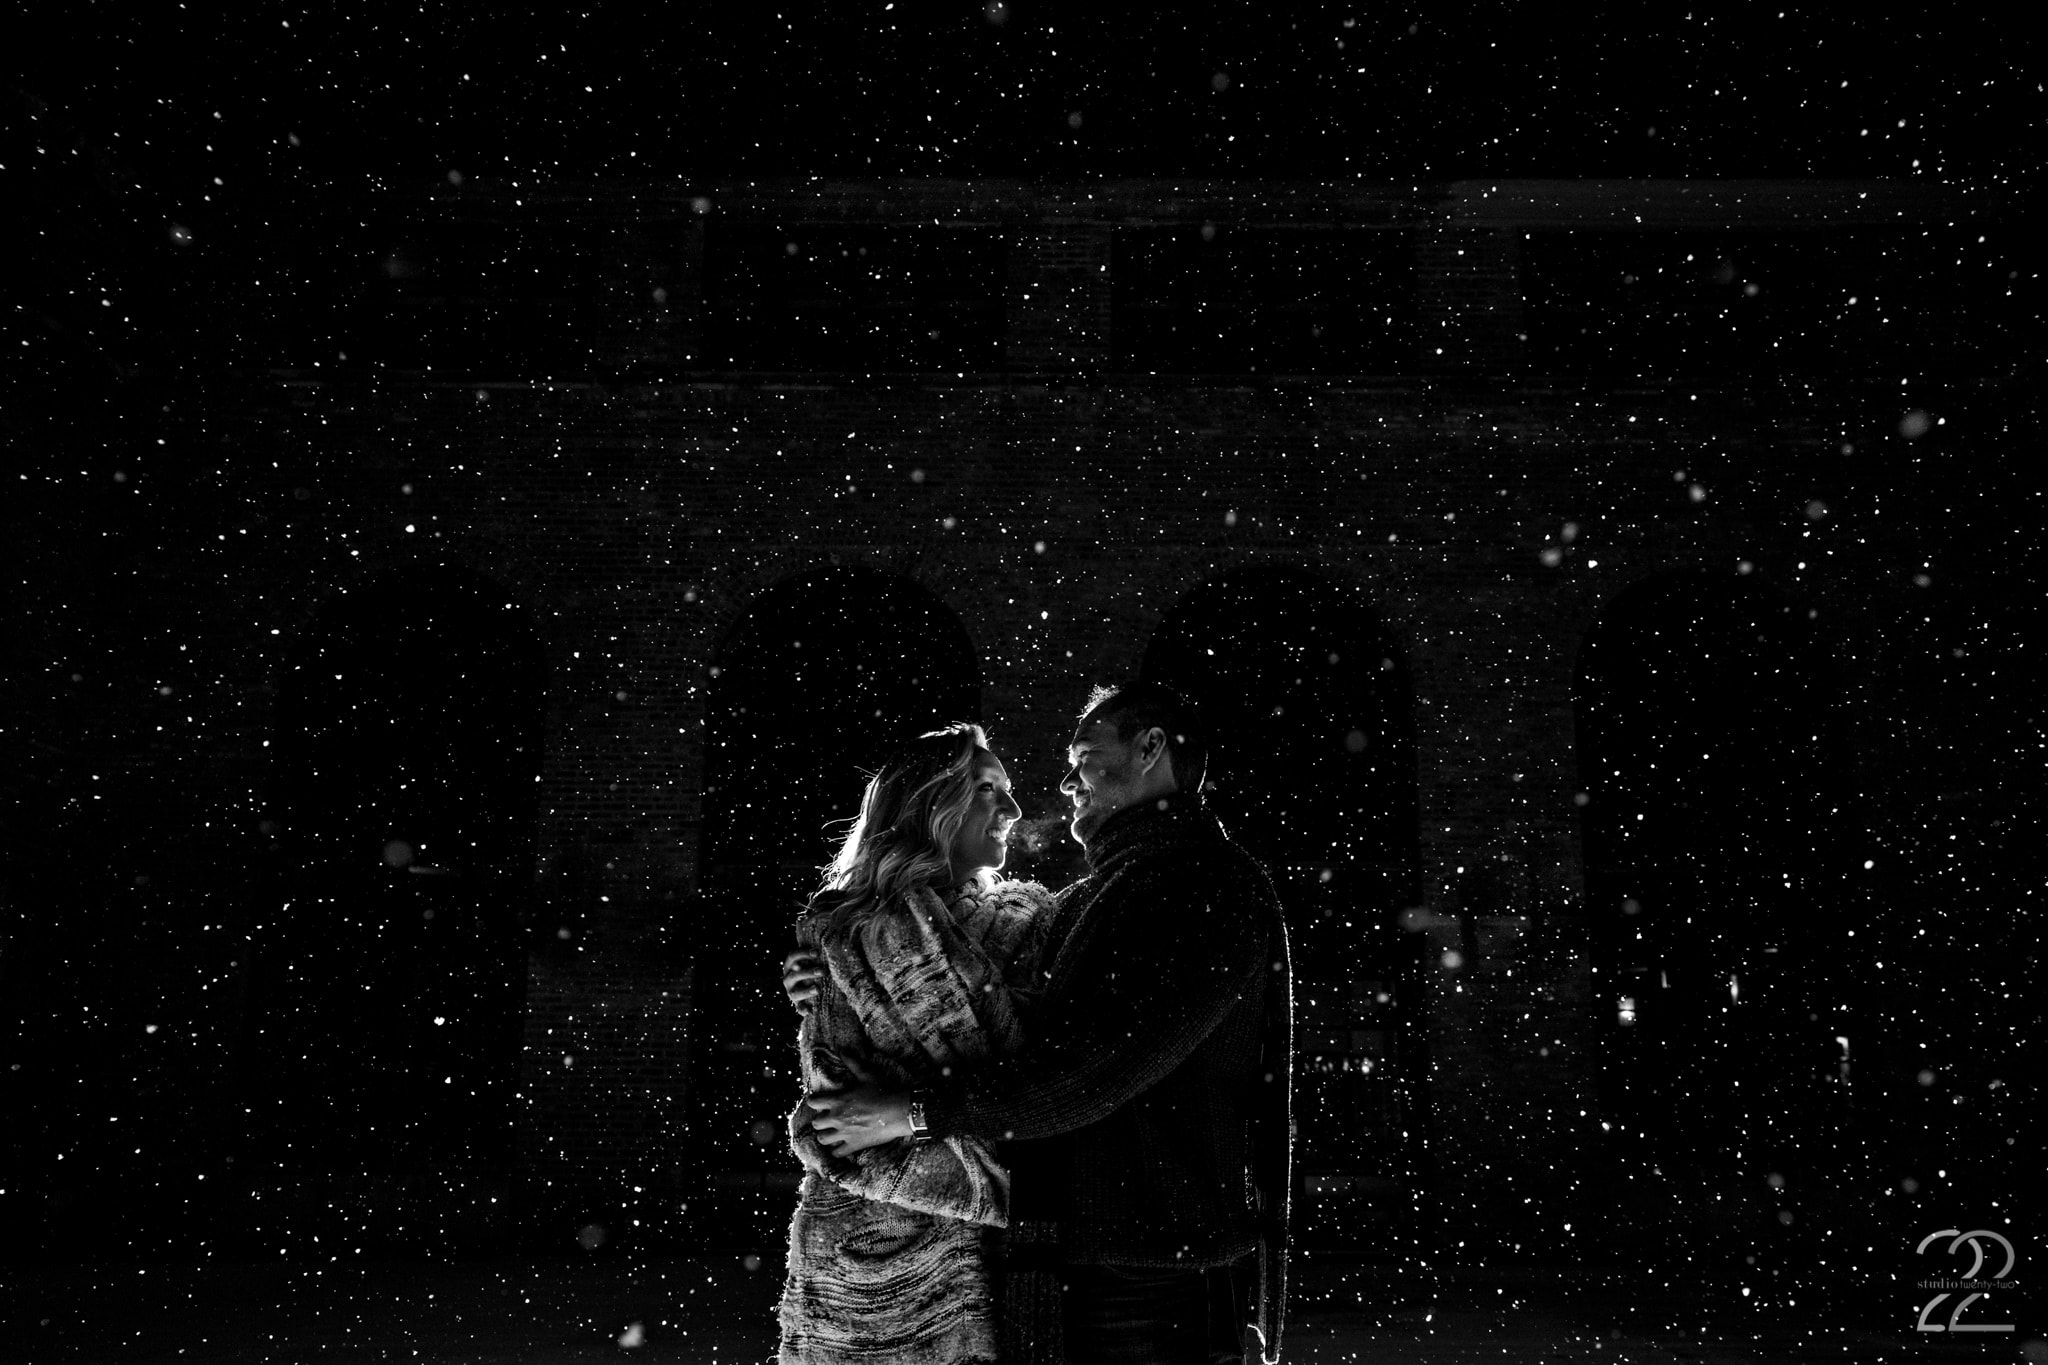 Chicago Engagement Photos - Studio 22 Photography - Winter Engagement Photos